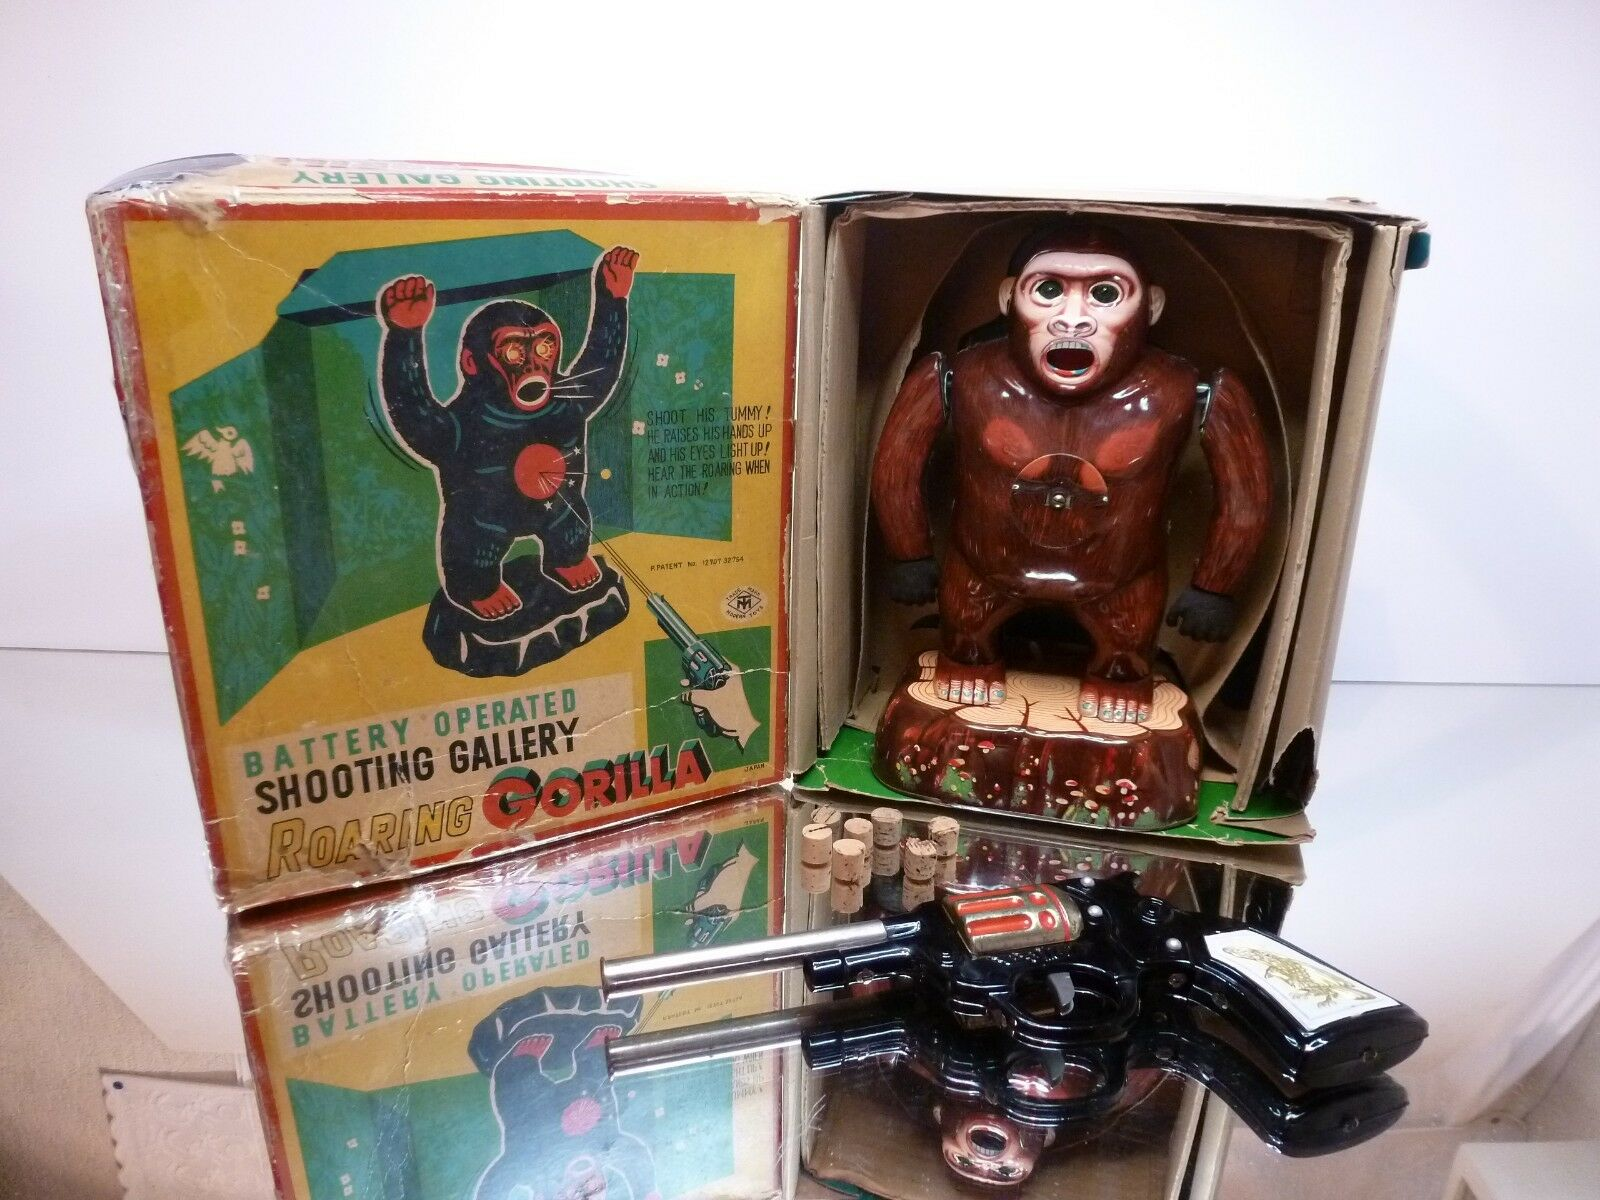 MT MODERN TOYS ROARING GORILLA  SHOOTING GALLERY - EXTREMELY RARE - GOOD IN BOX